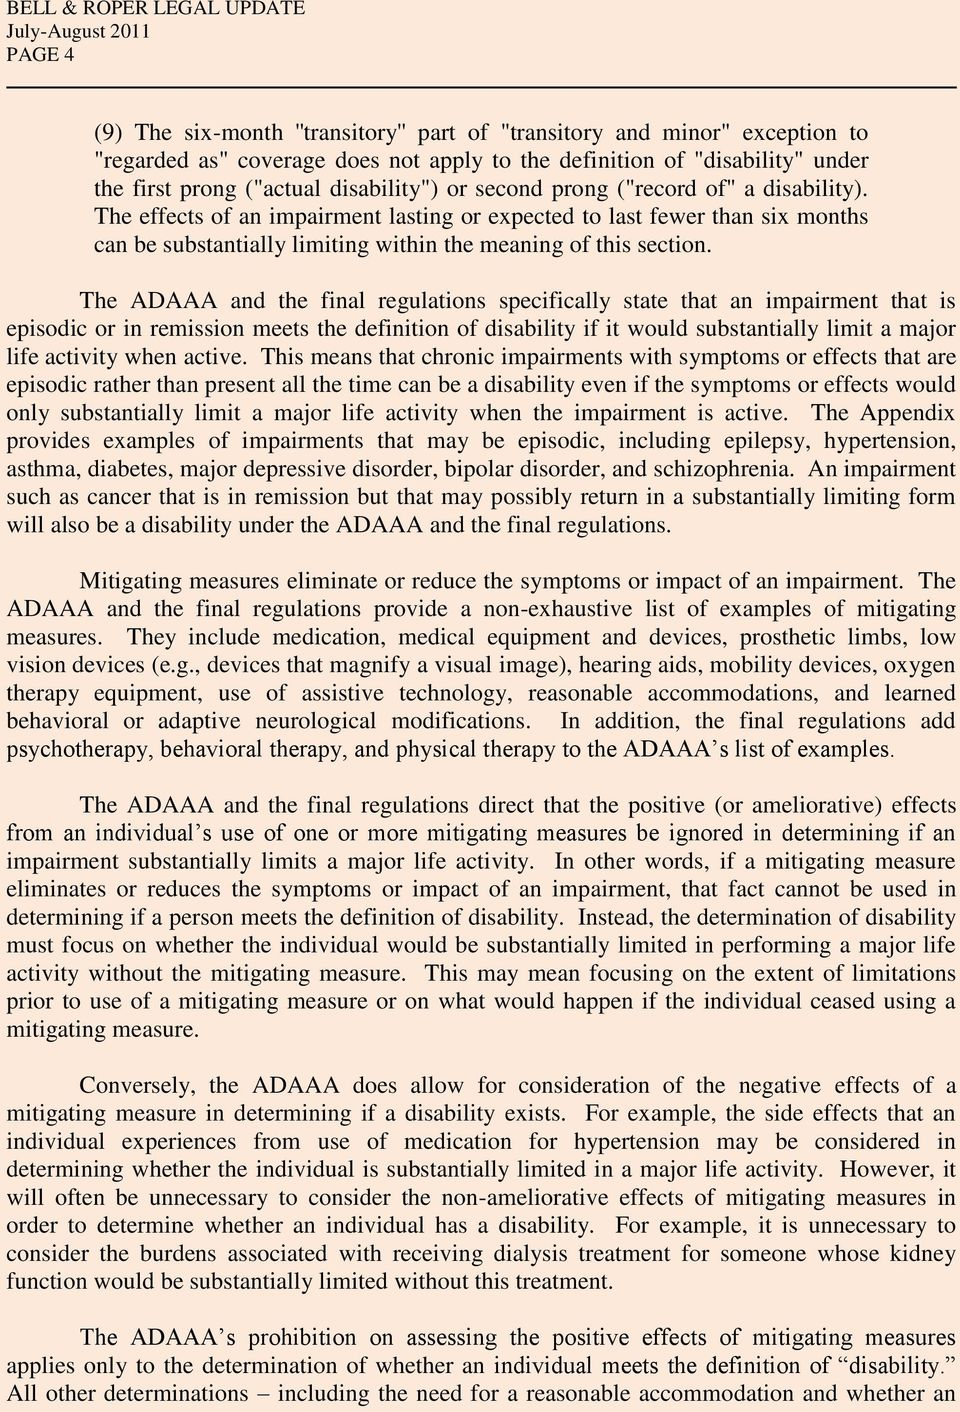 The ADAAA and the final regulations specifically state that an impairment that is episodic or in remission meets the definition of disability if it would substantially limit a major life activity